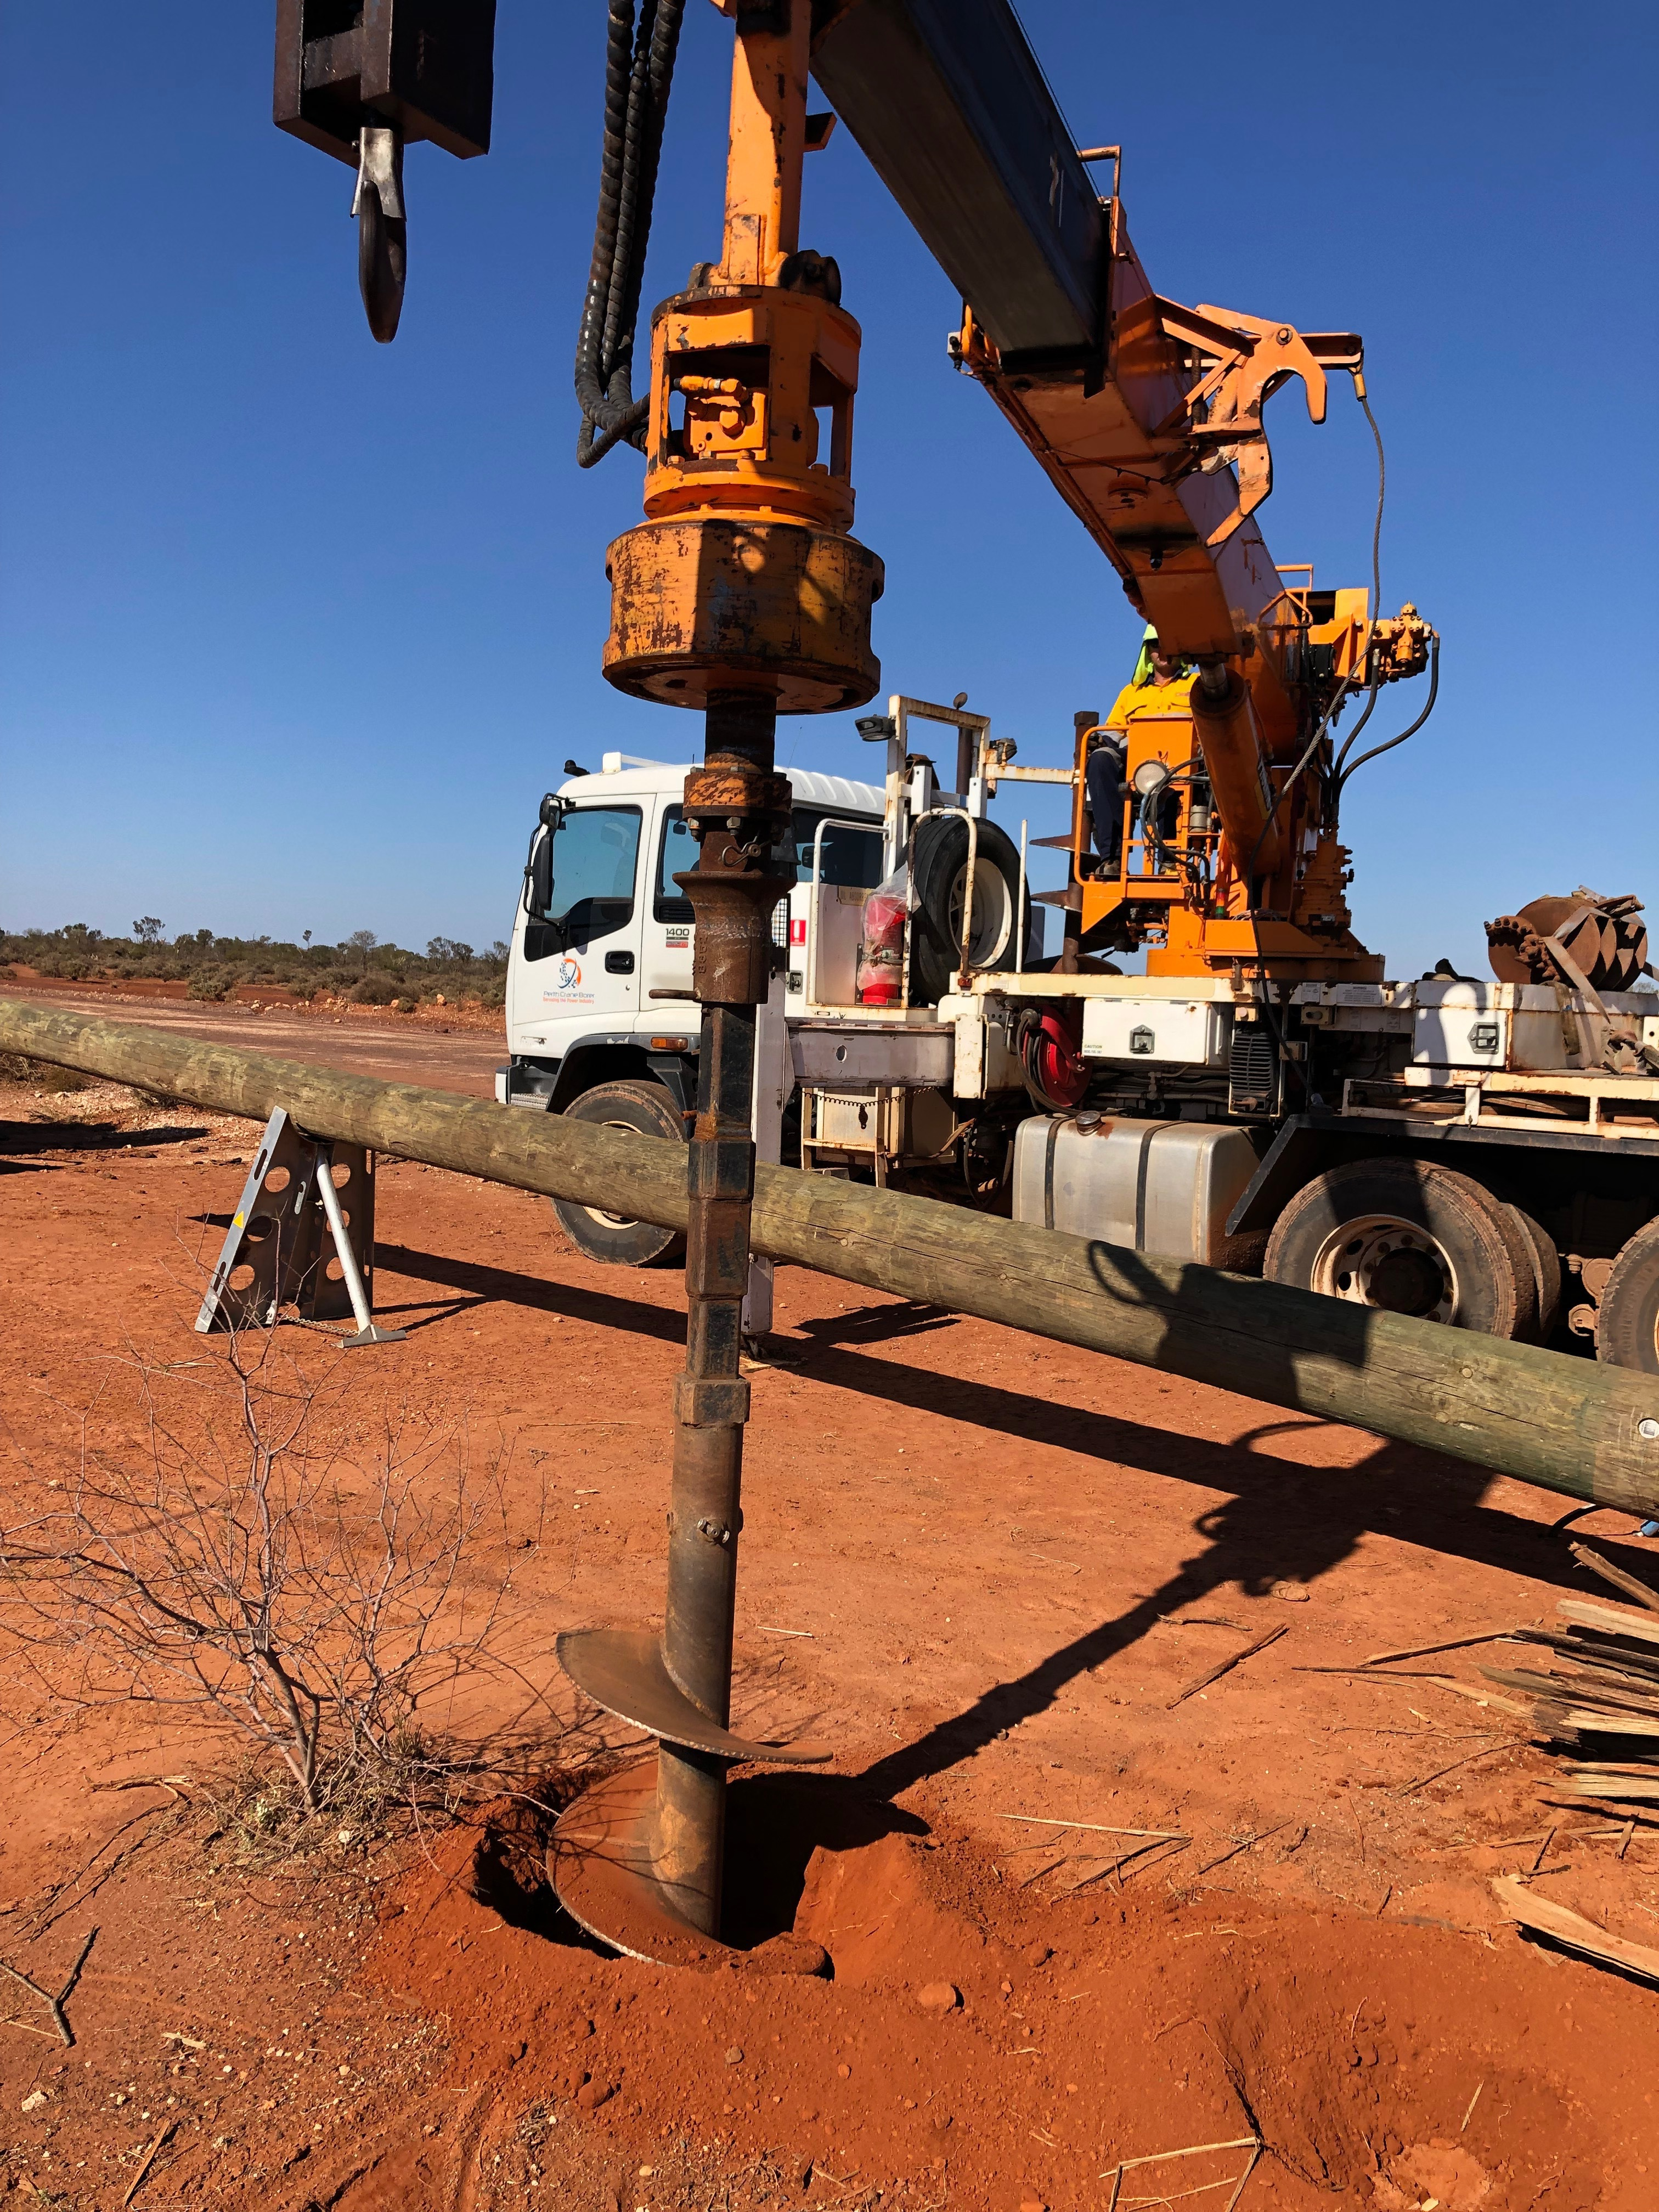 Morris Infrastructure Group Truck Drilling remote Perth, Western Australia